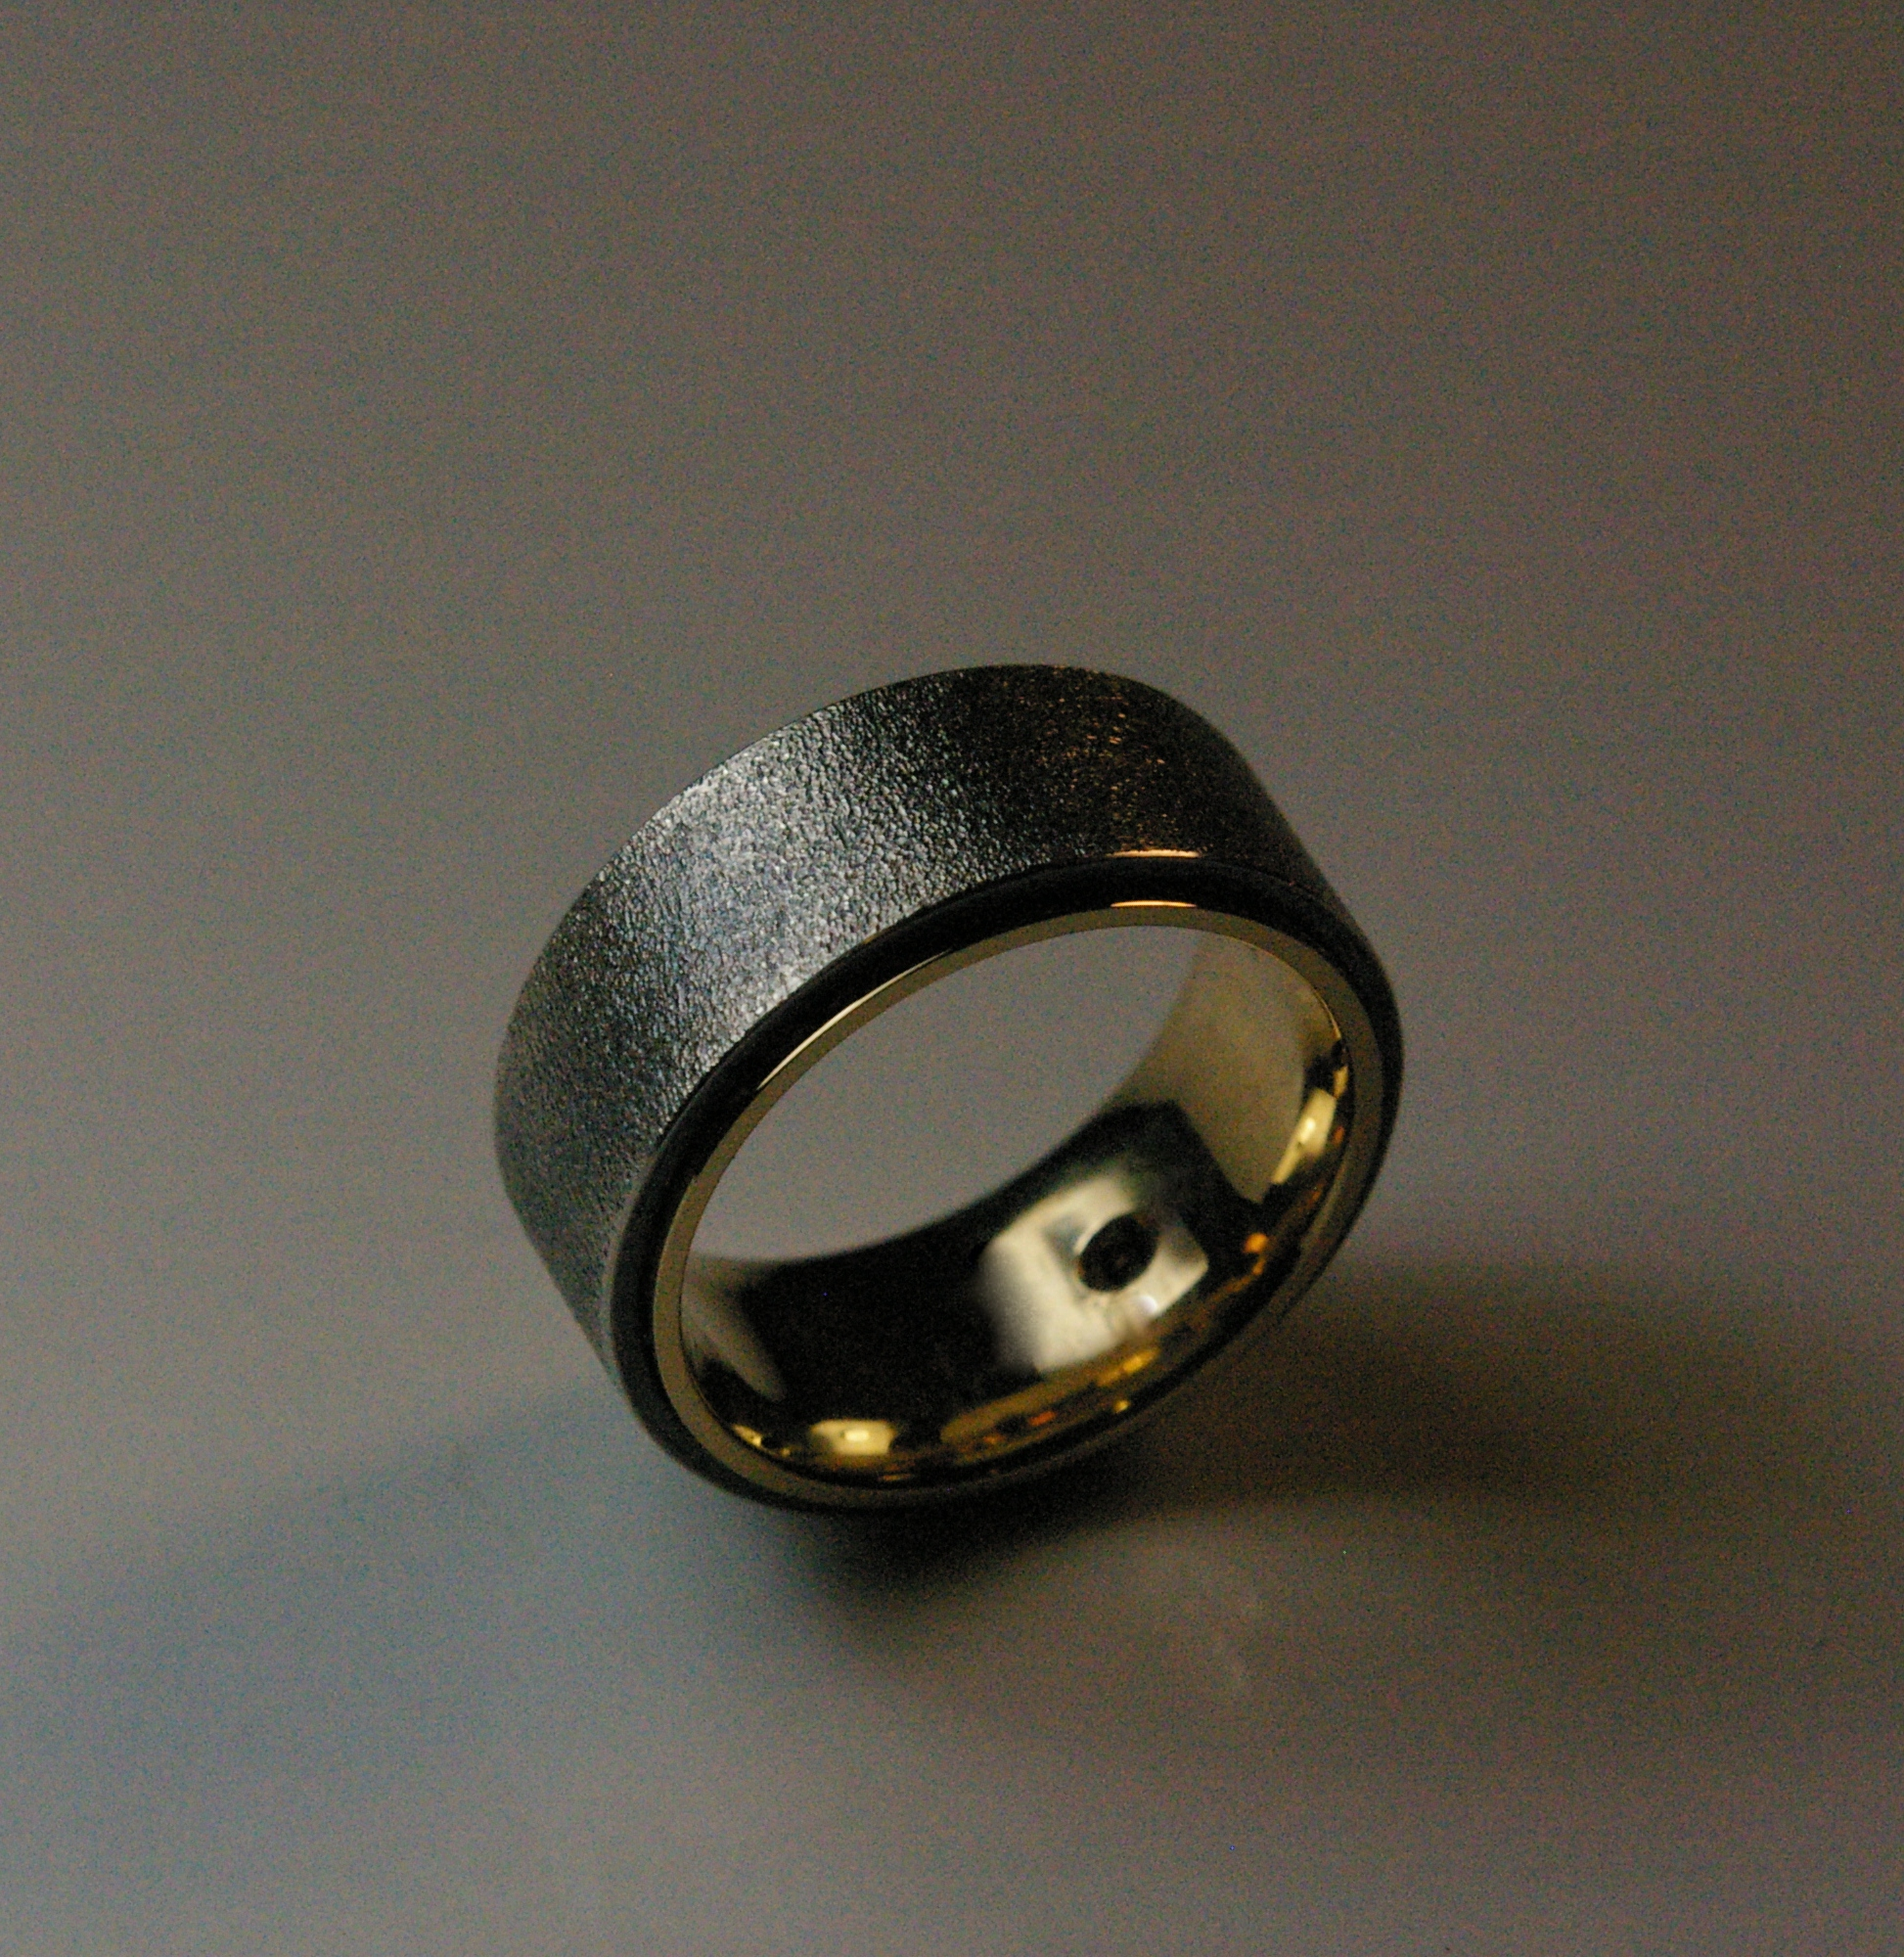 18 Karat Yellow Gold Wedding Band with Oxidized Sterling Silver